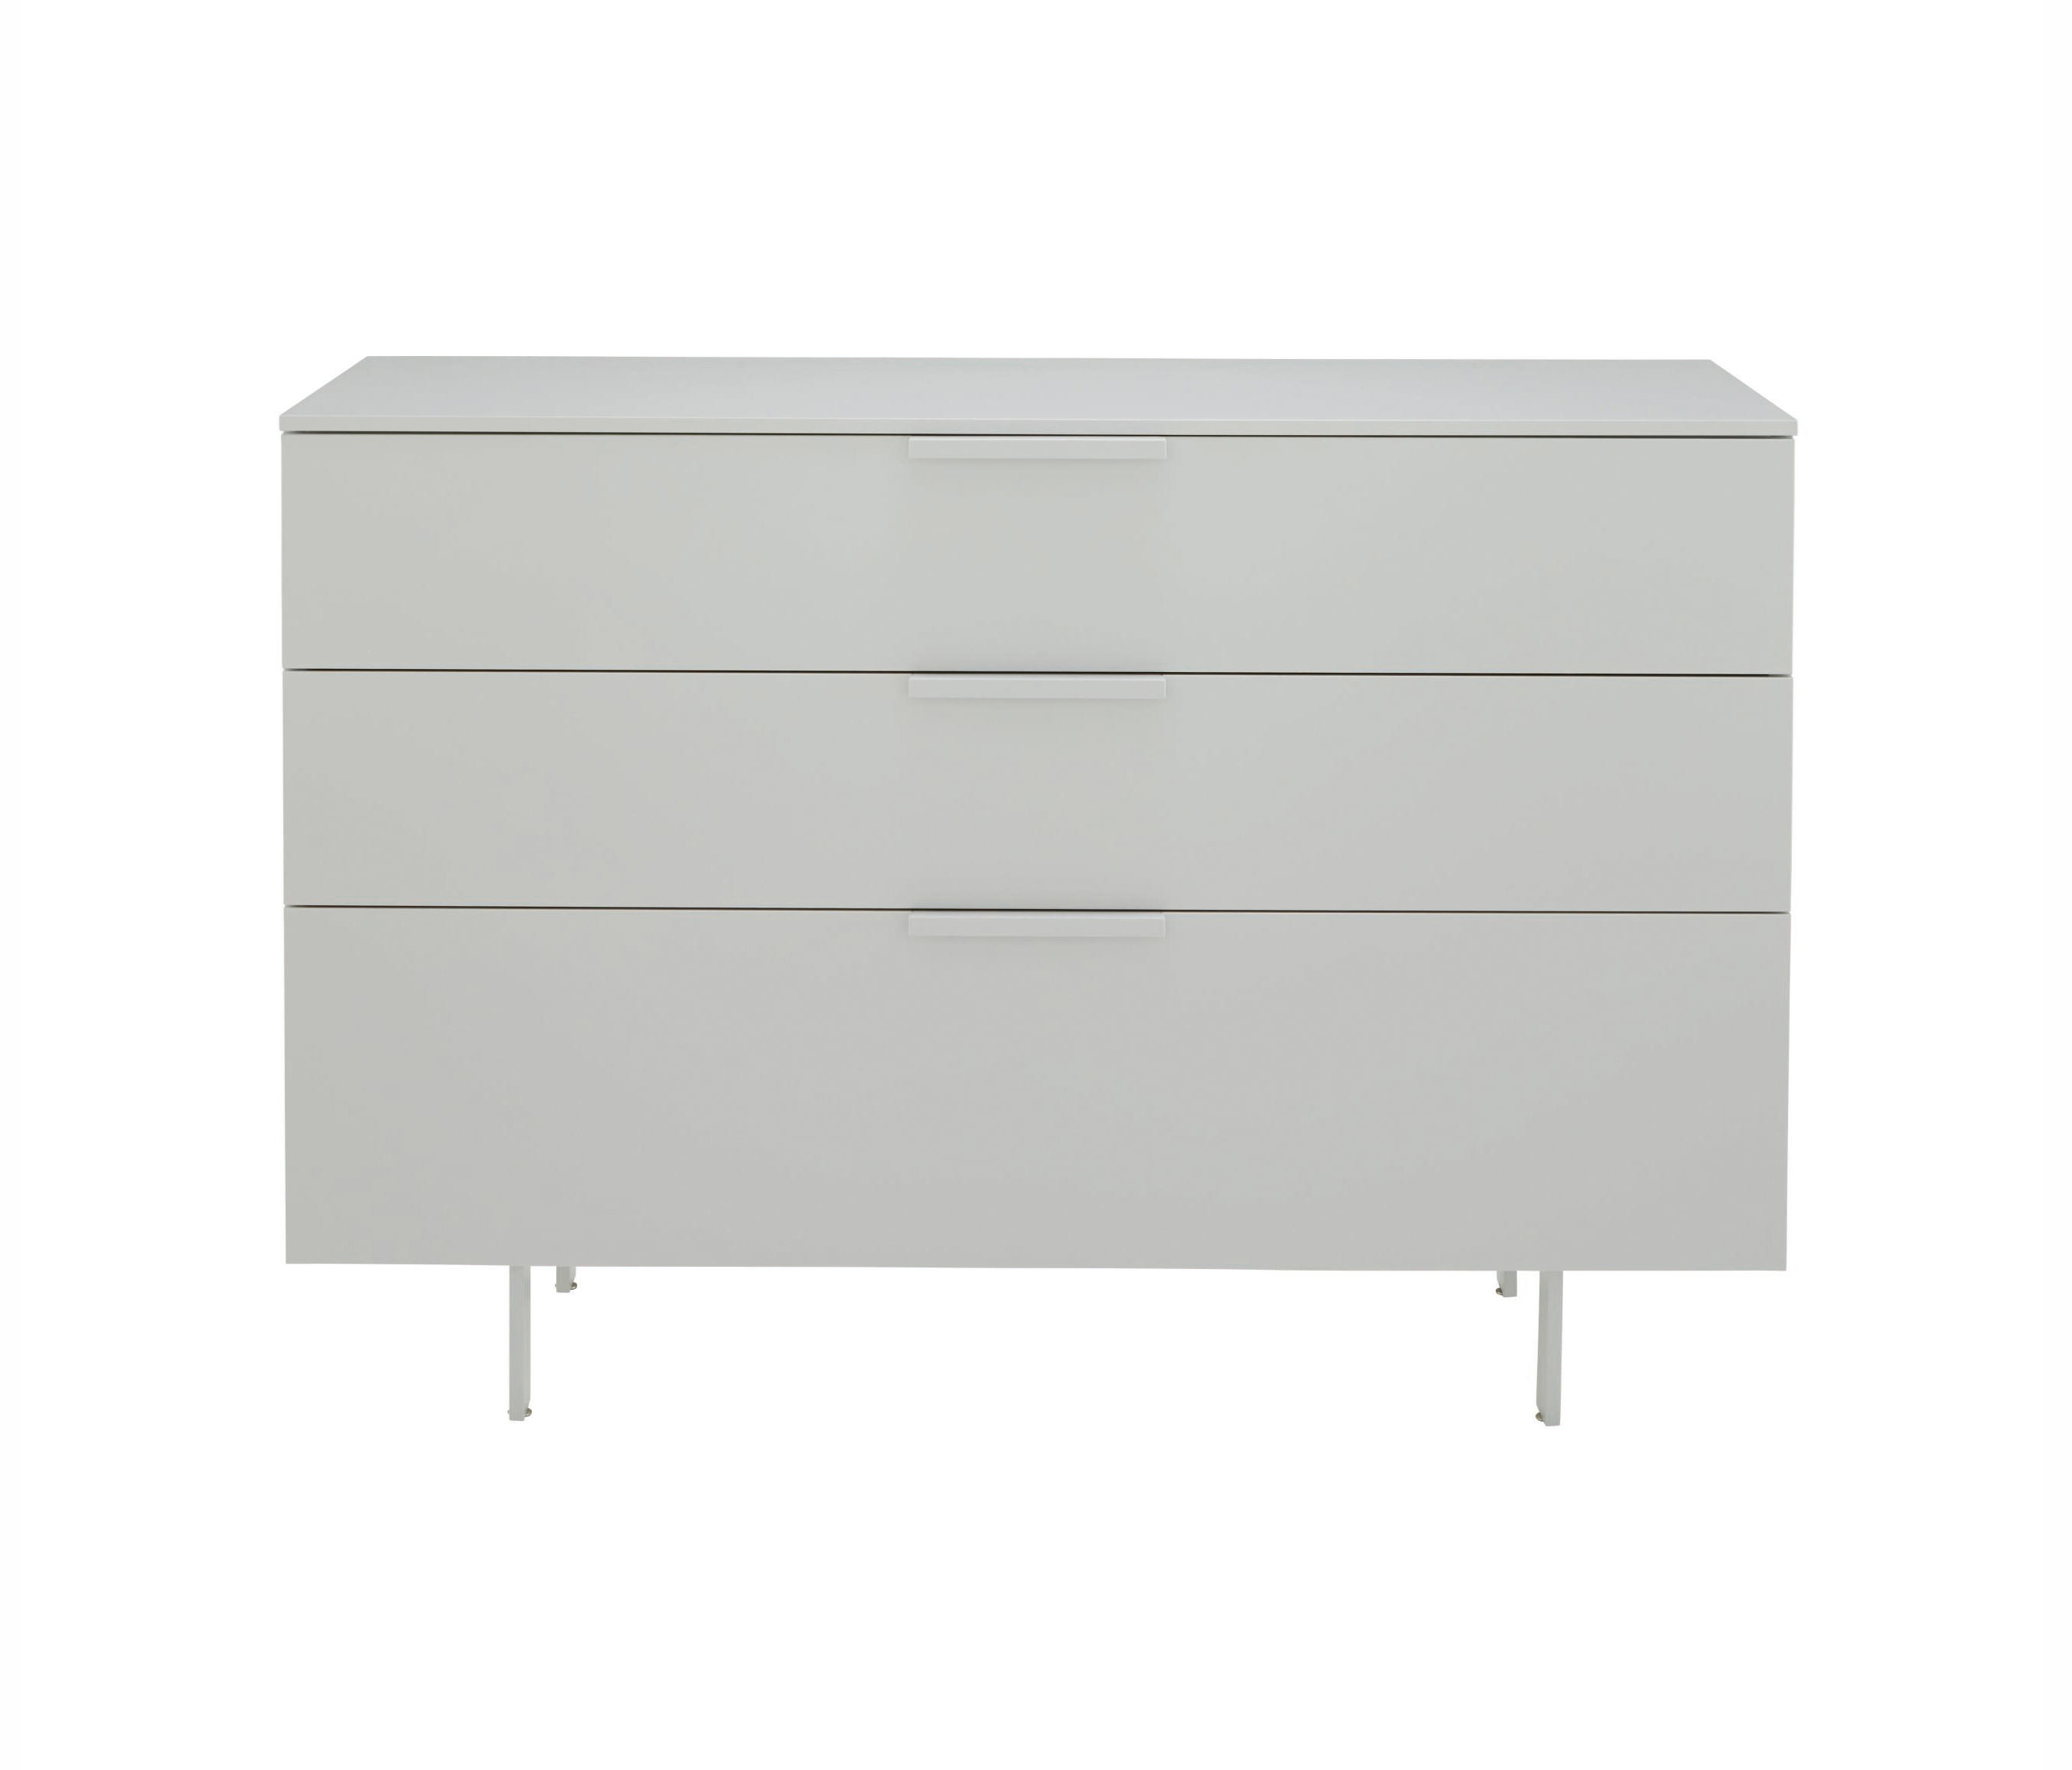 Ligne Roset Tv Meubel.Everywhere 3 Drawer Chest C 26 Lacquers Price A Lacquers